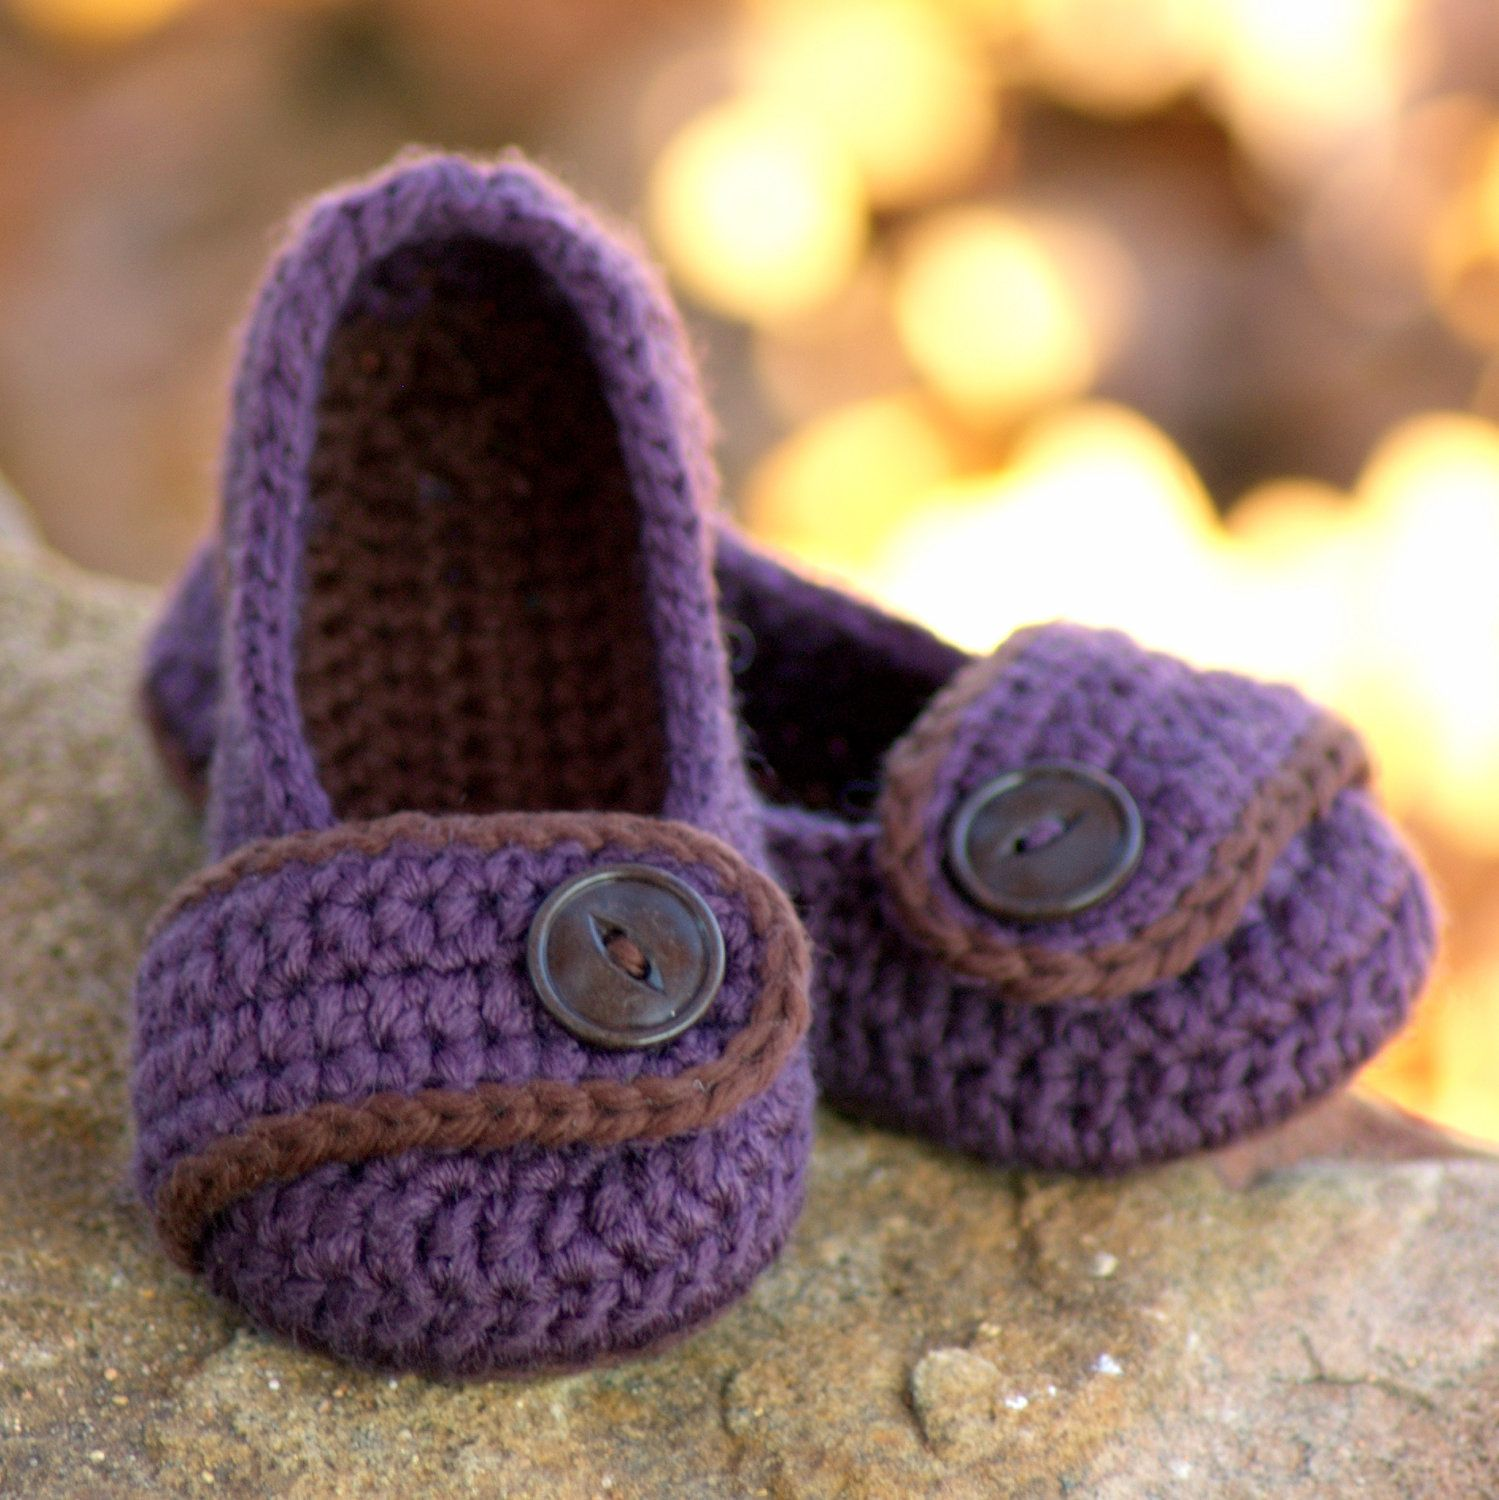 Toddler crochet pattern for the valerie slipper toddler toddler crochet pattern for the valerie slipper toddler childrens sizes 4 9 all bankloansurffo Choice Image